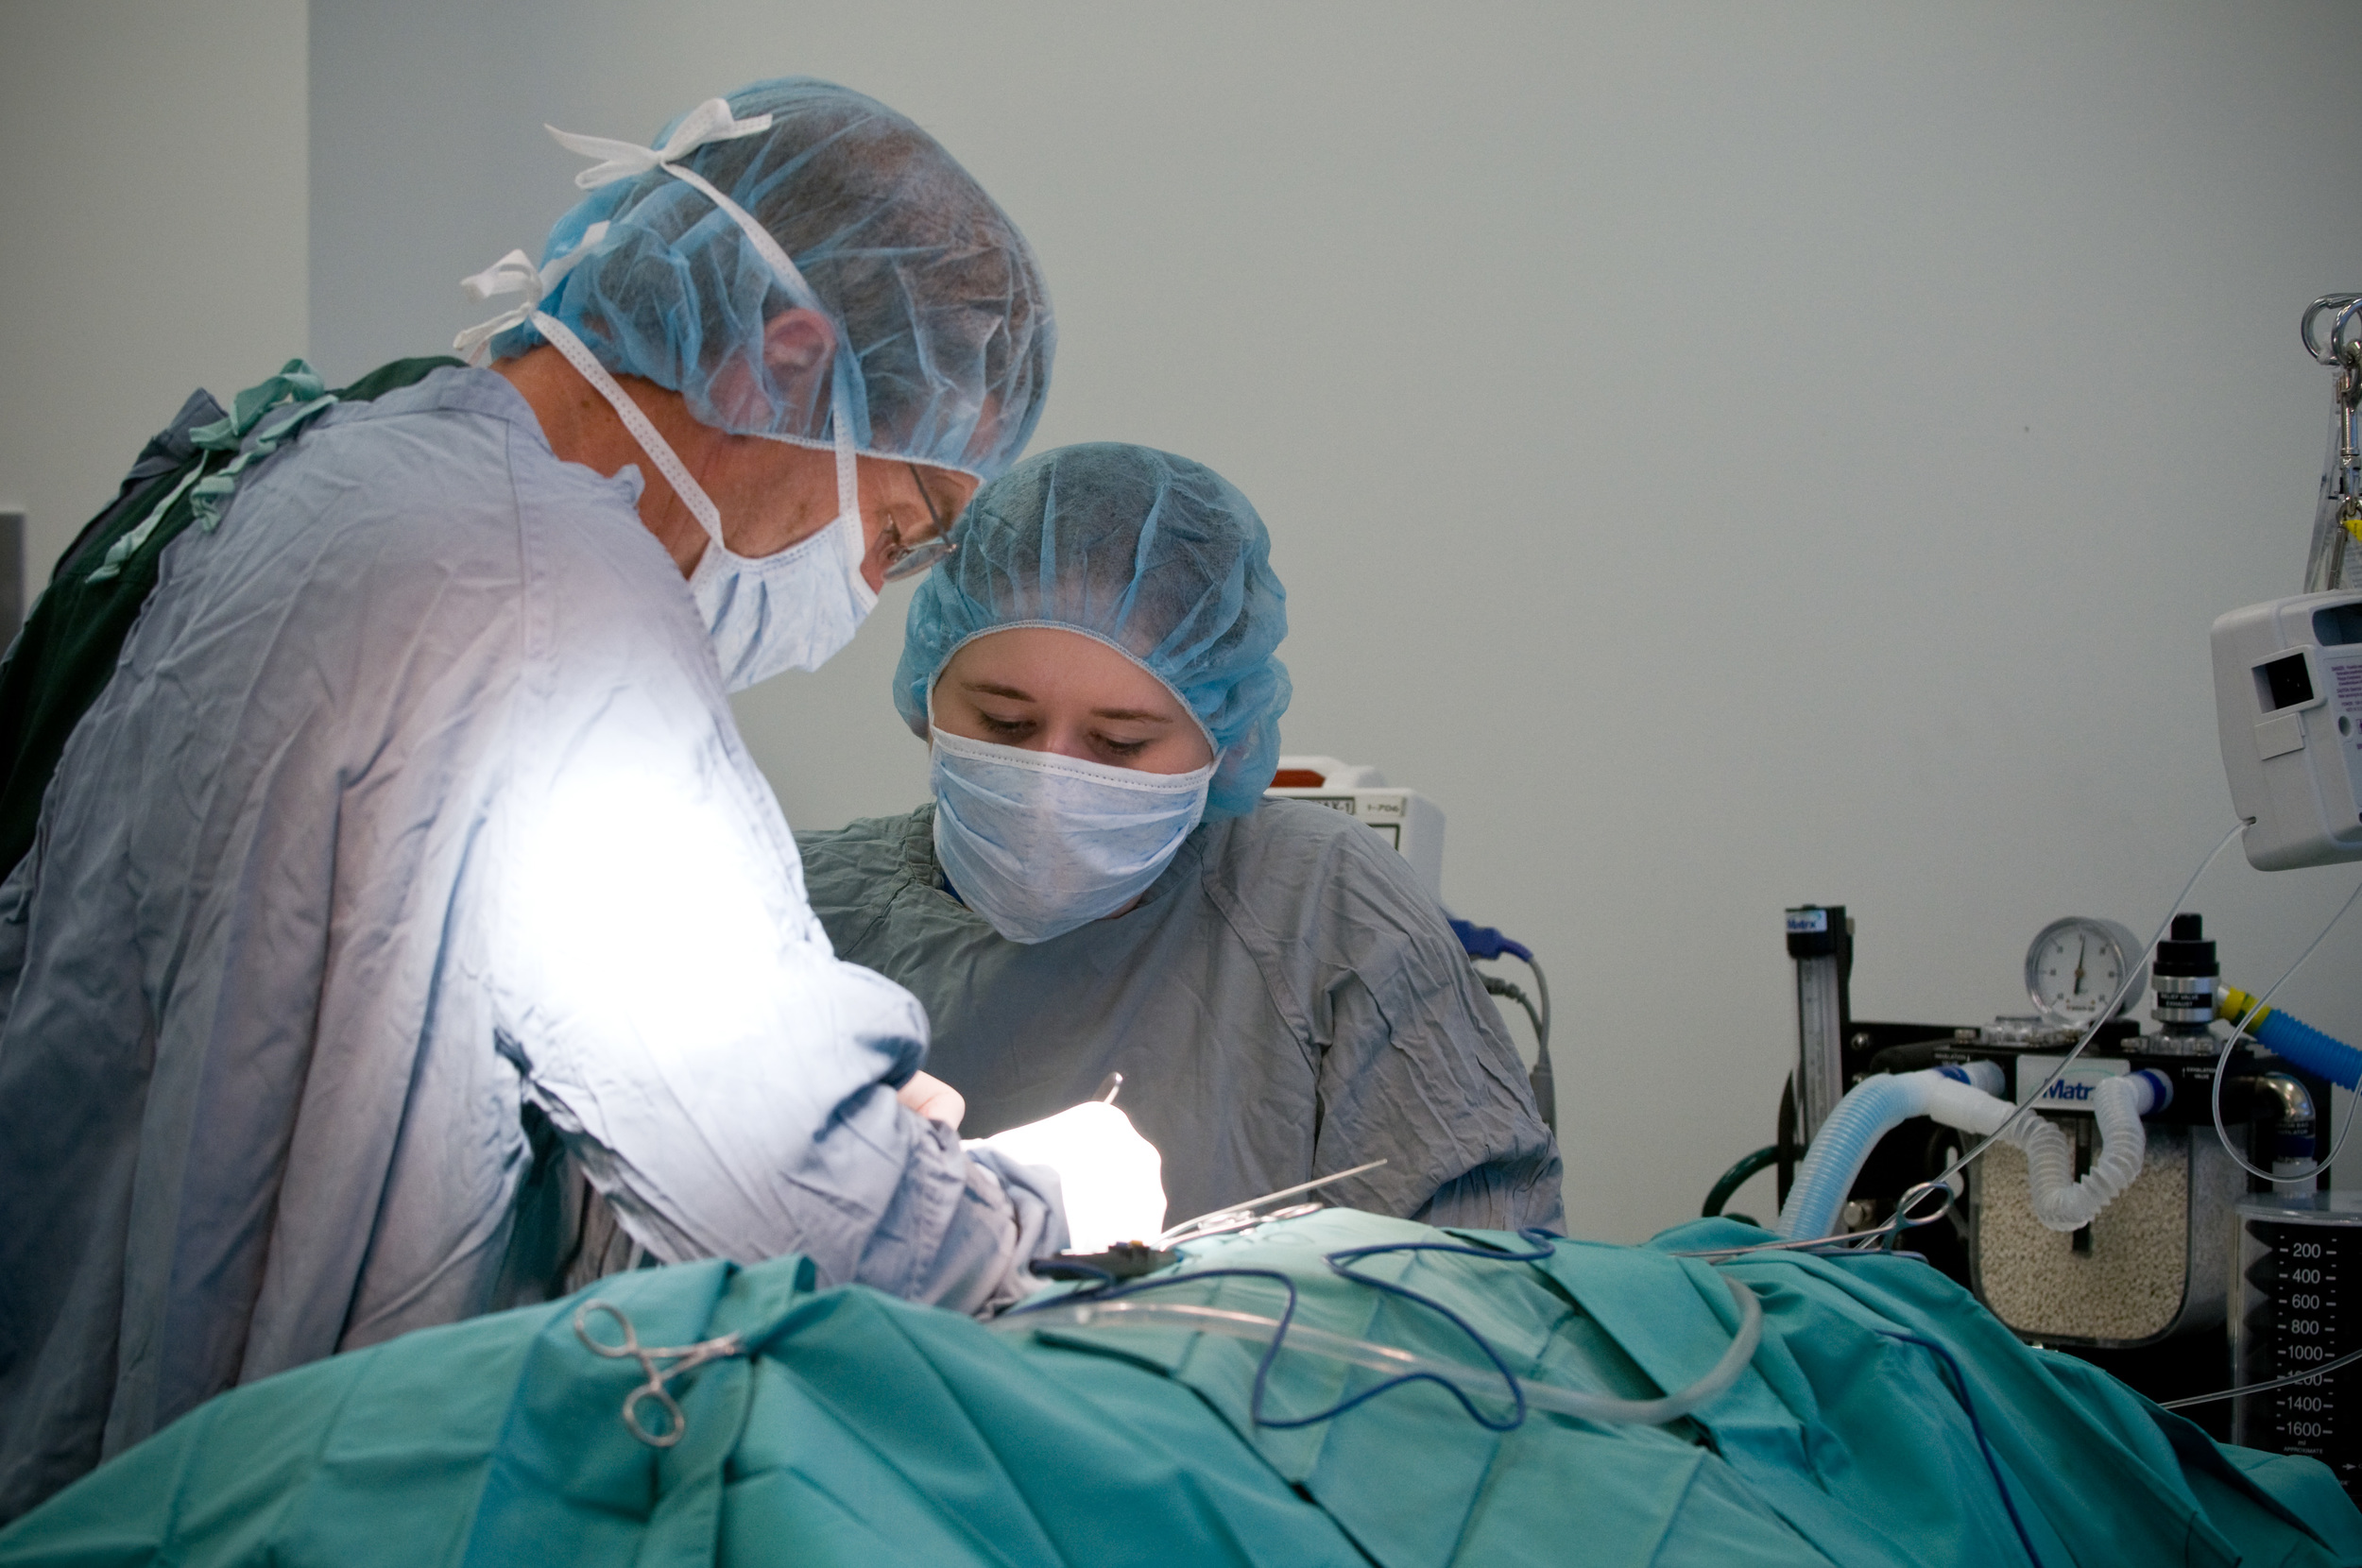 Surgery begins. Sterile drapes are used to establish a sterile field that minimizes contamination. The surgical suite has access to sterile supplies, sterilizing devices, fluid and blanket warmers, and other equipment.